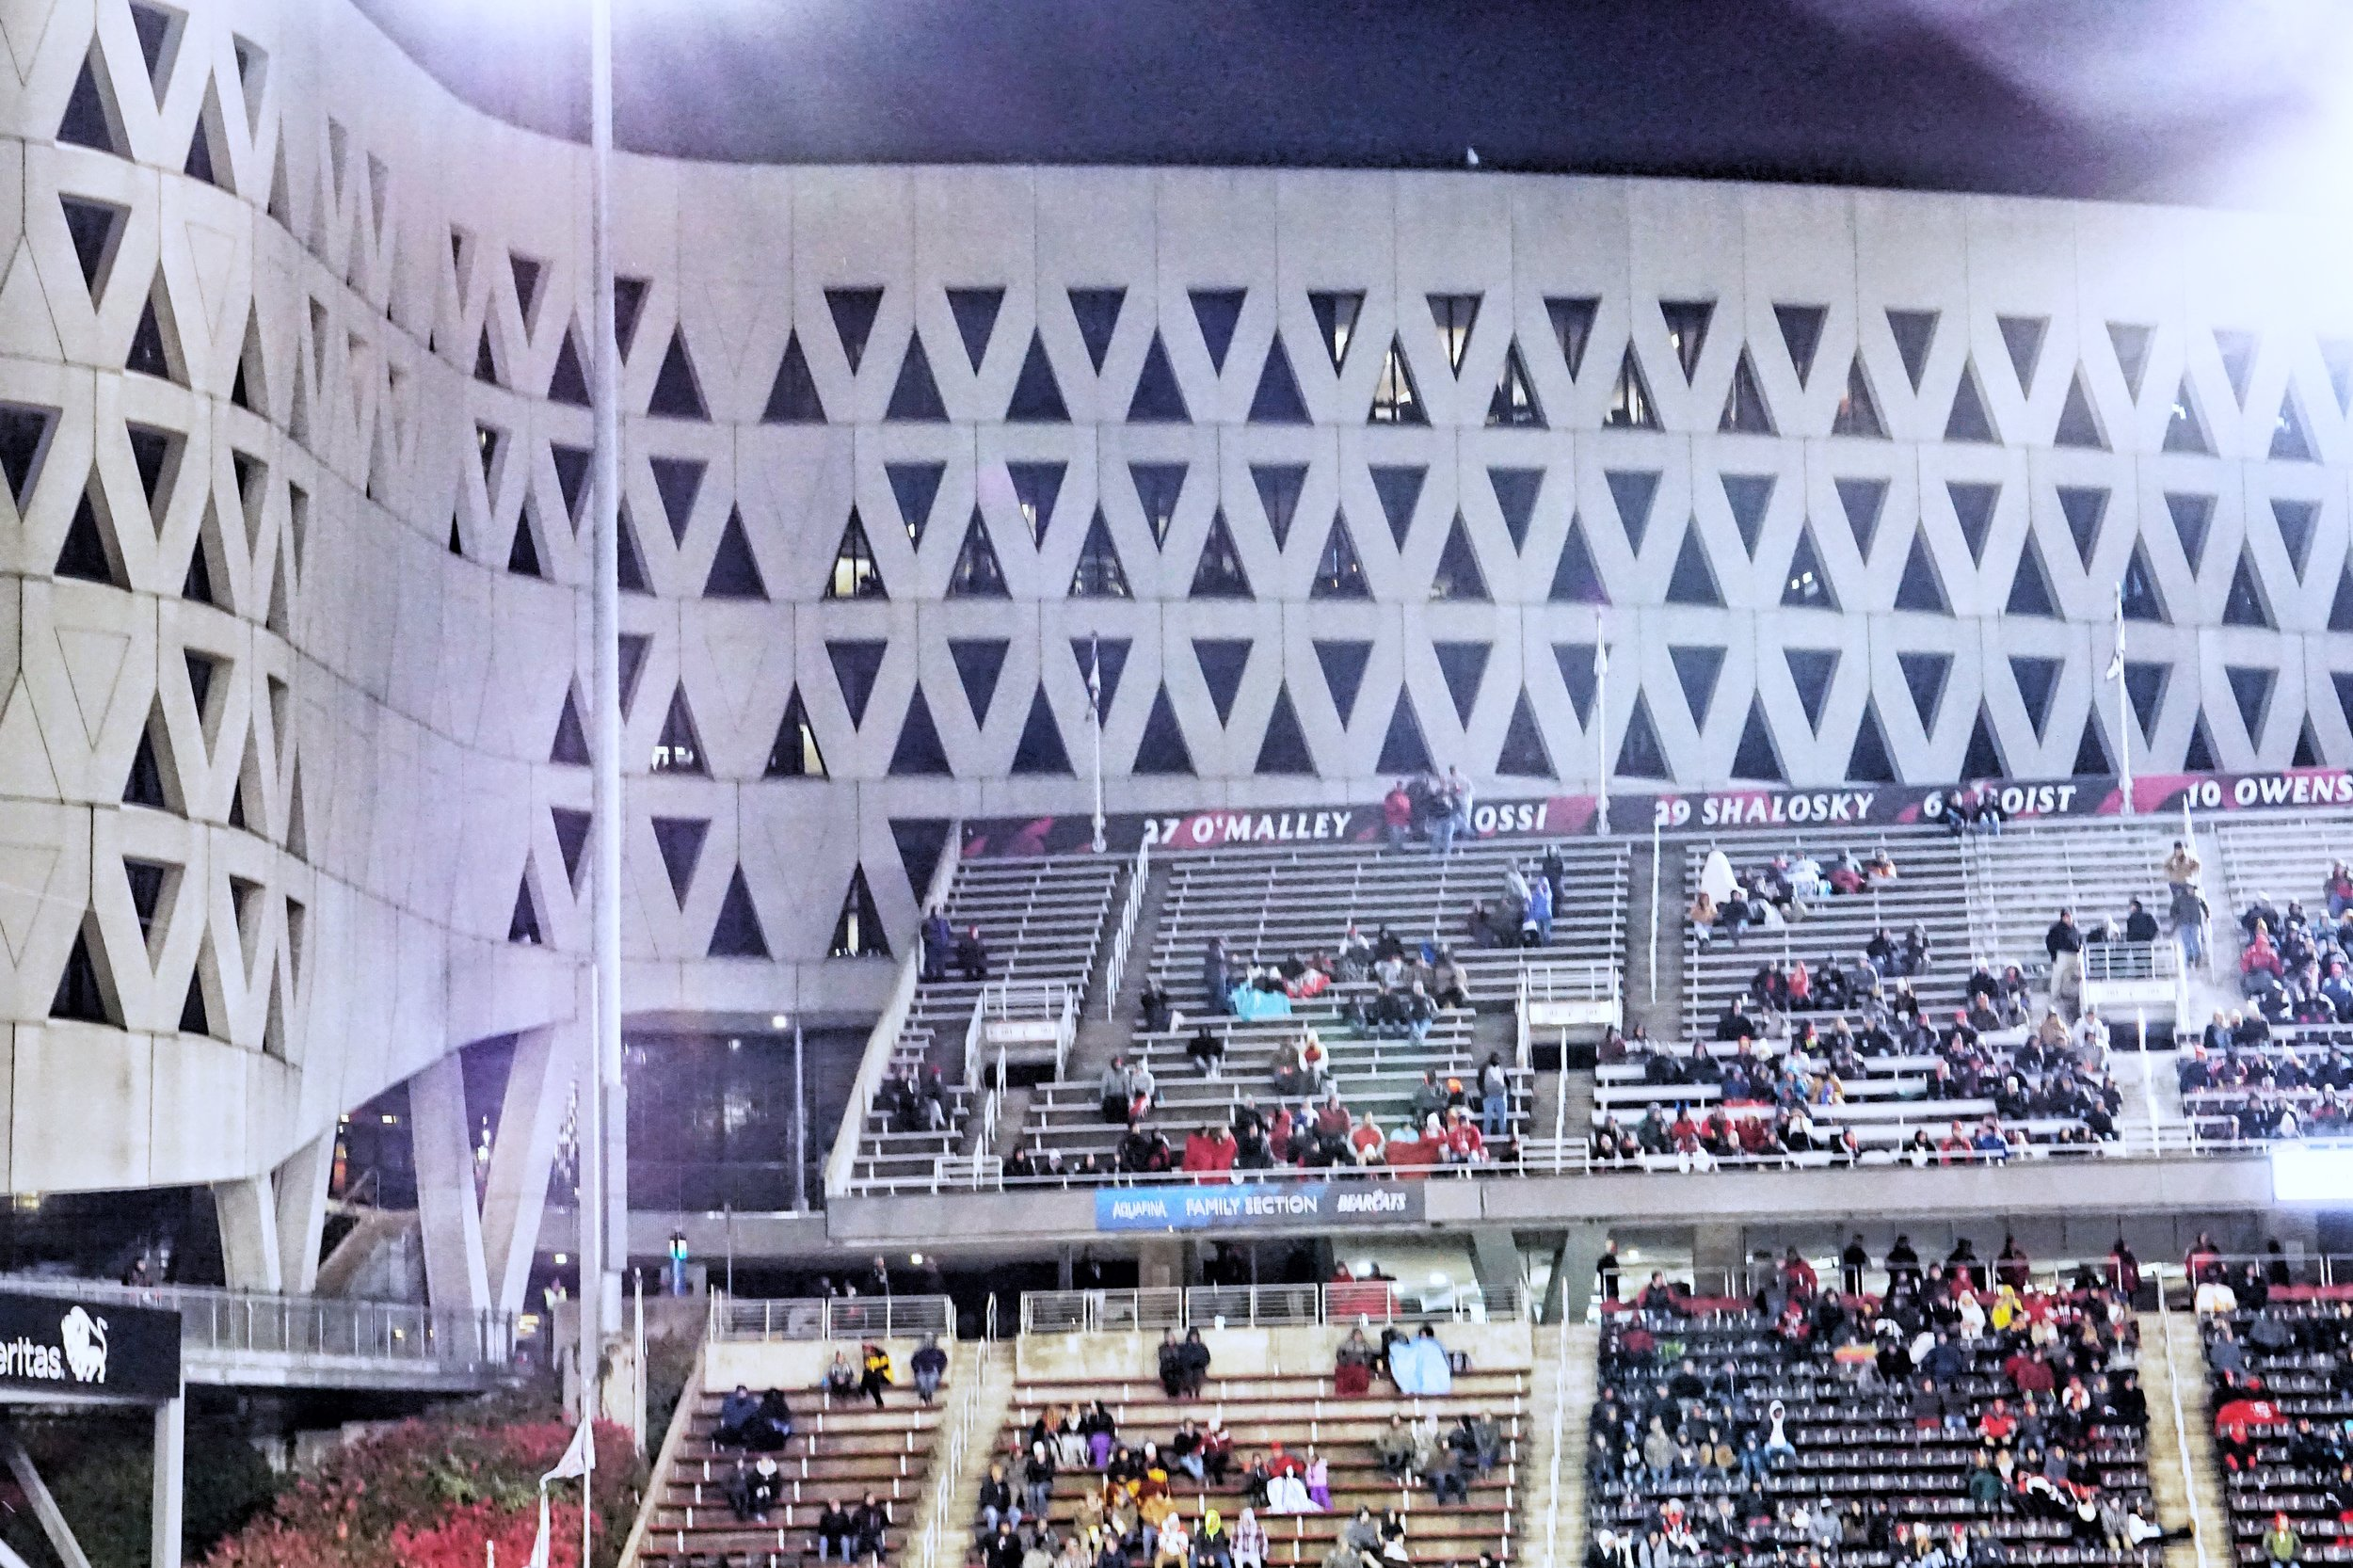 One of the Stadiums most distinctive visual features, the concrete triangles of the Robert D. Lindner Building that can be seen over one wall of the stadium.